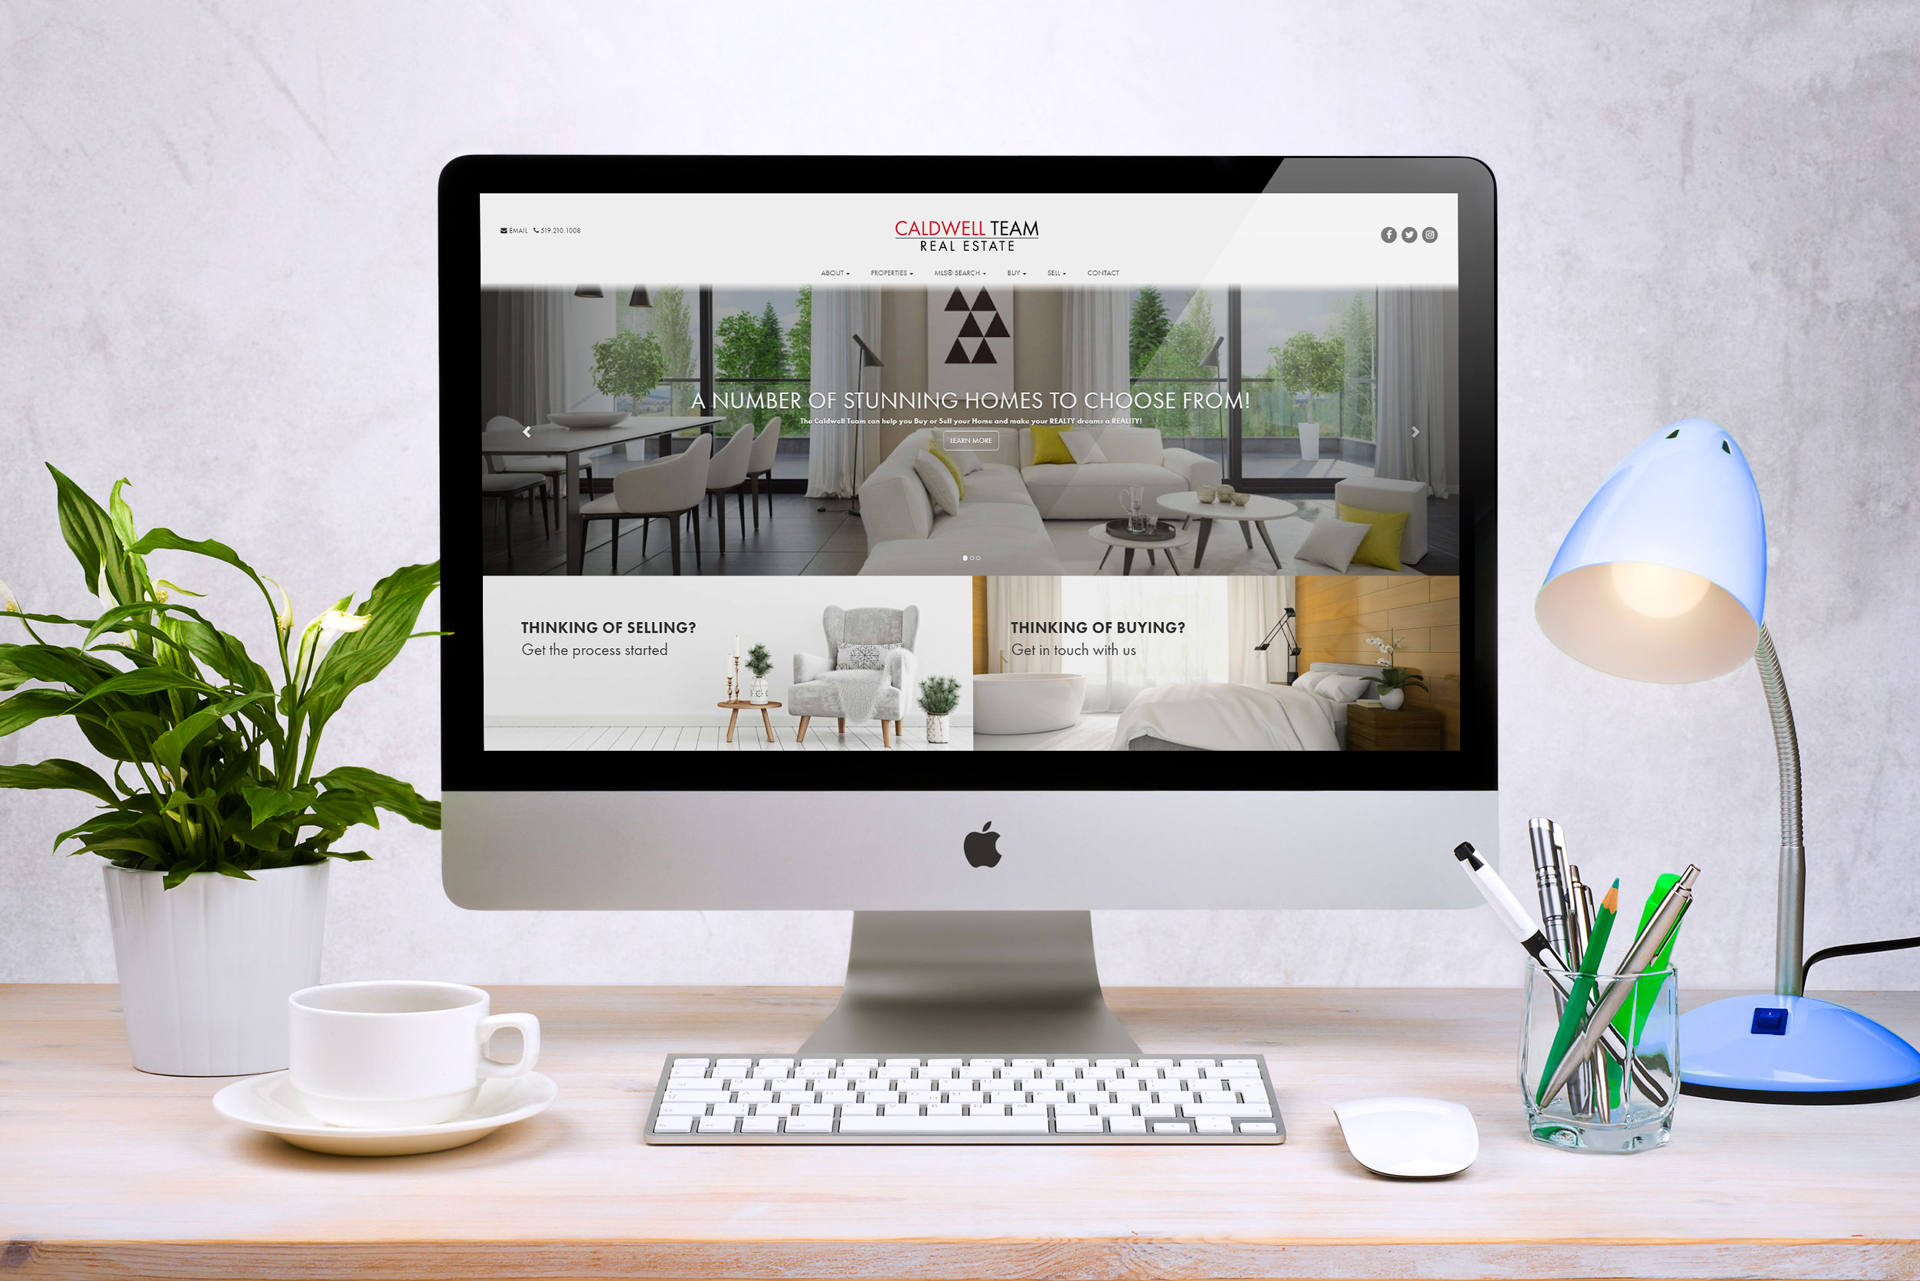 Caldwell Team - Real Estate Website with Design Customization by RealtyNinja